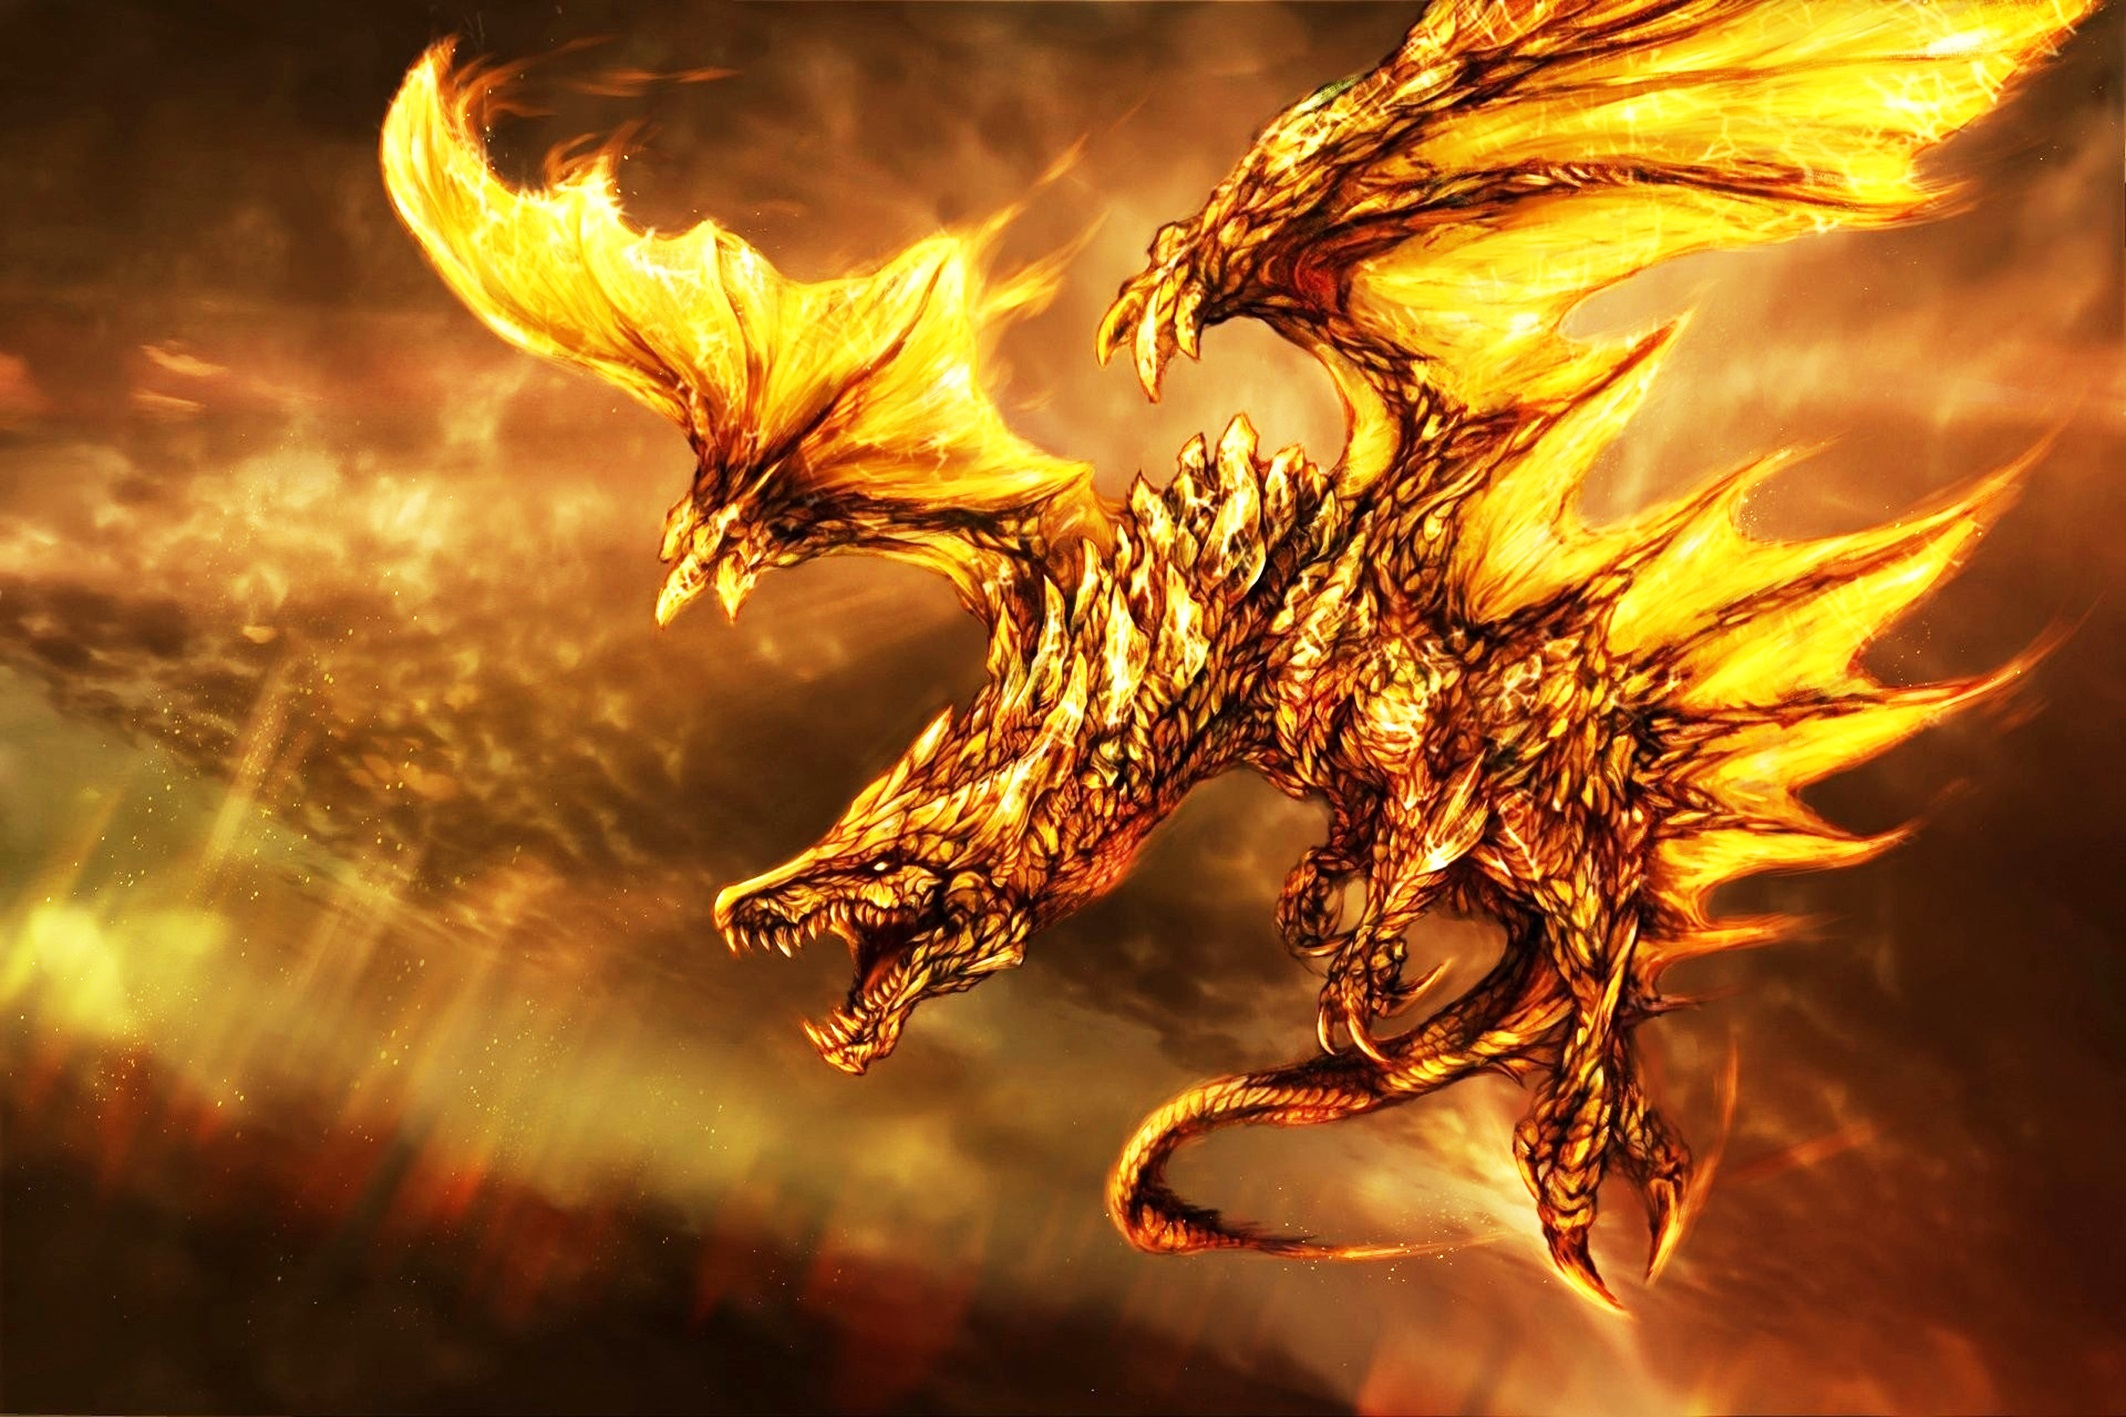 buyer large deal booking 2 dragon fire Modern Living room home wall decoration wood frame poster